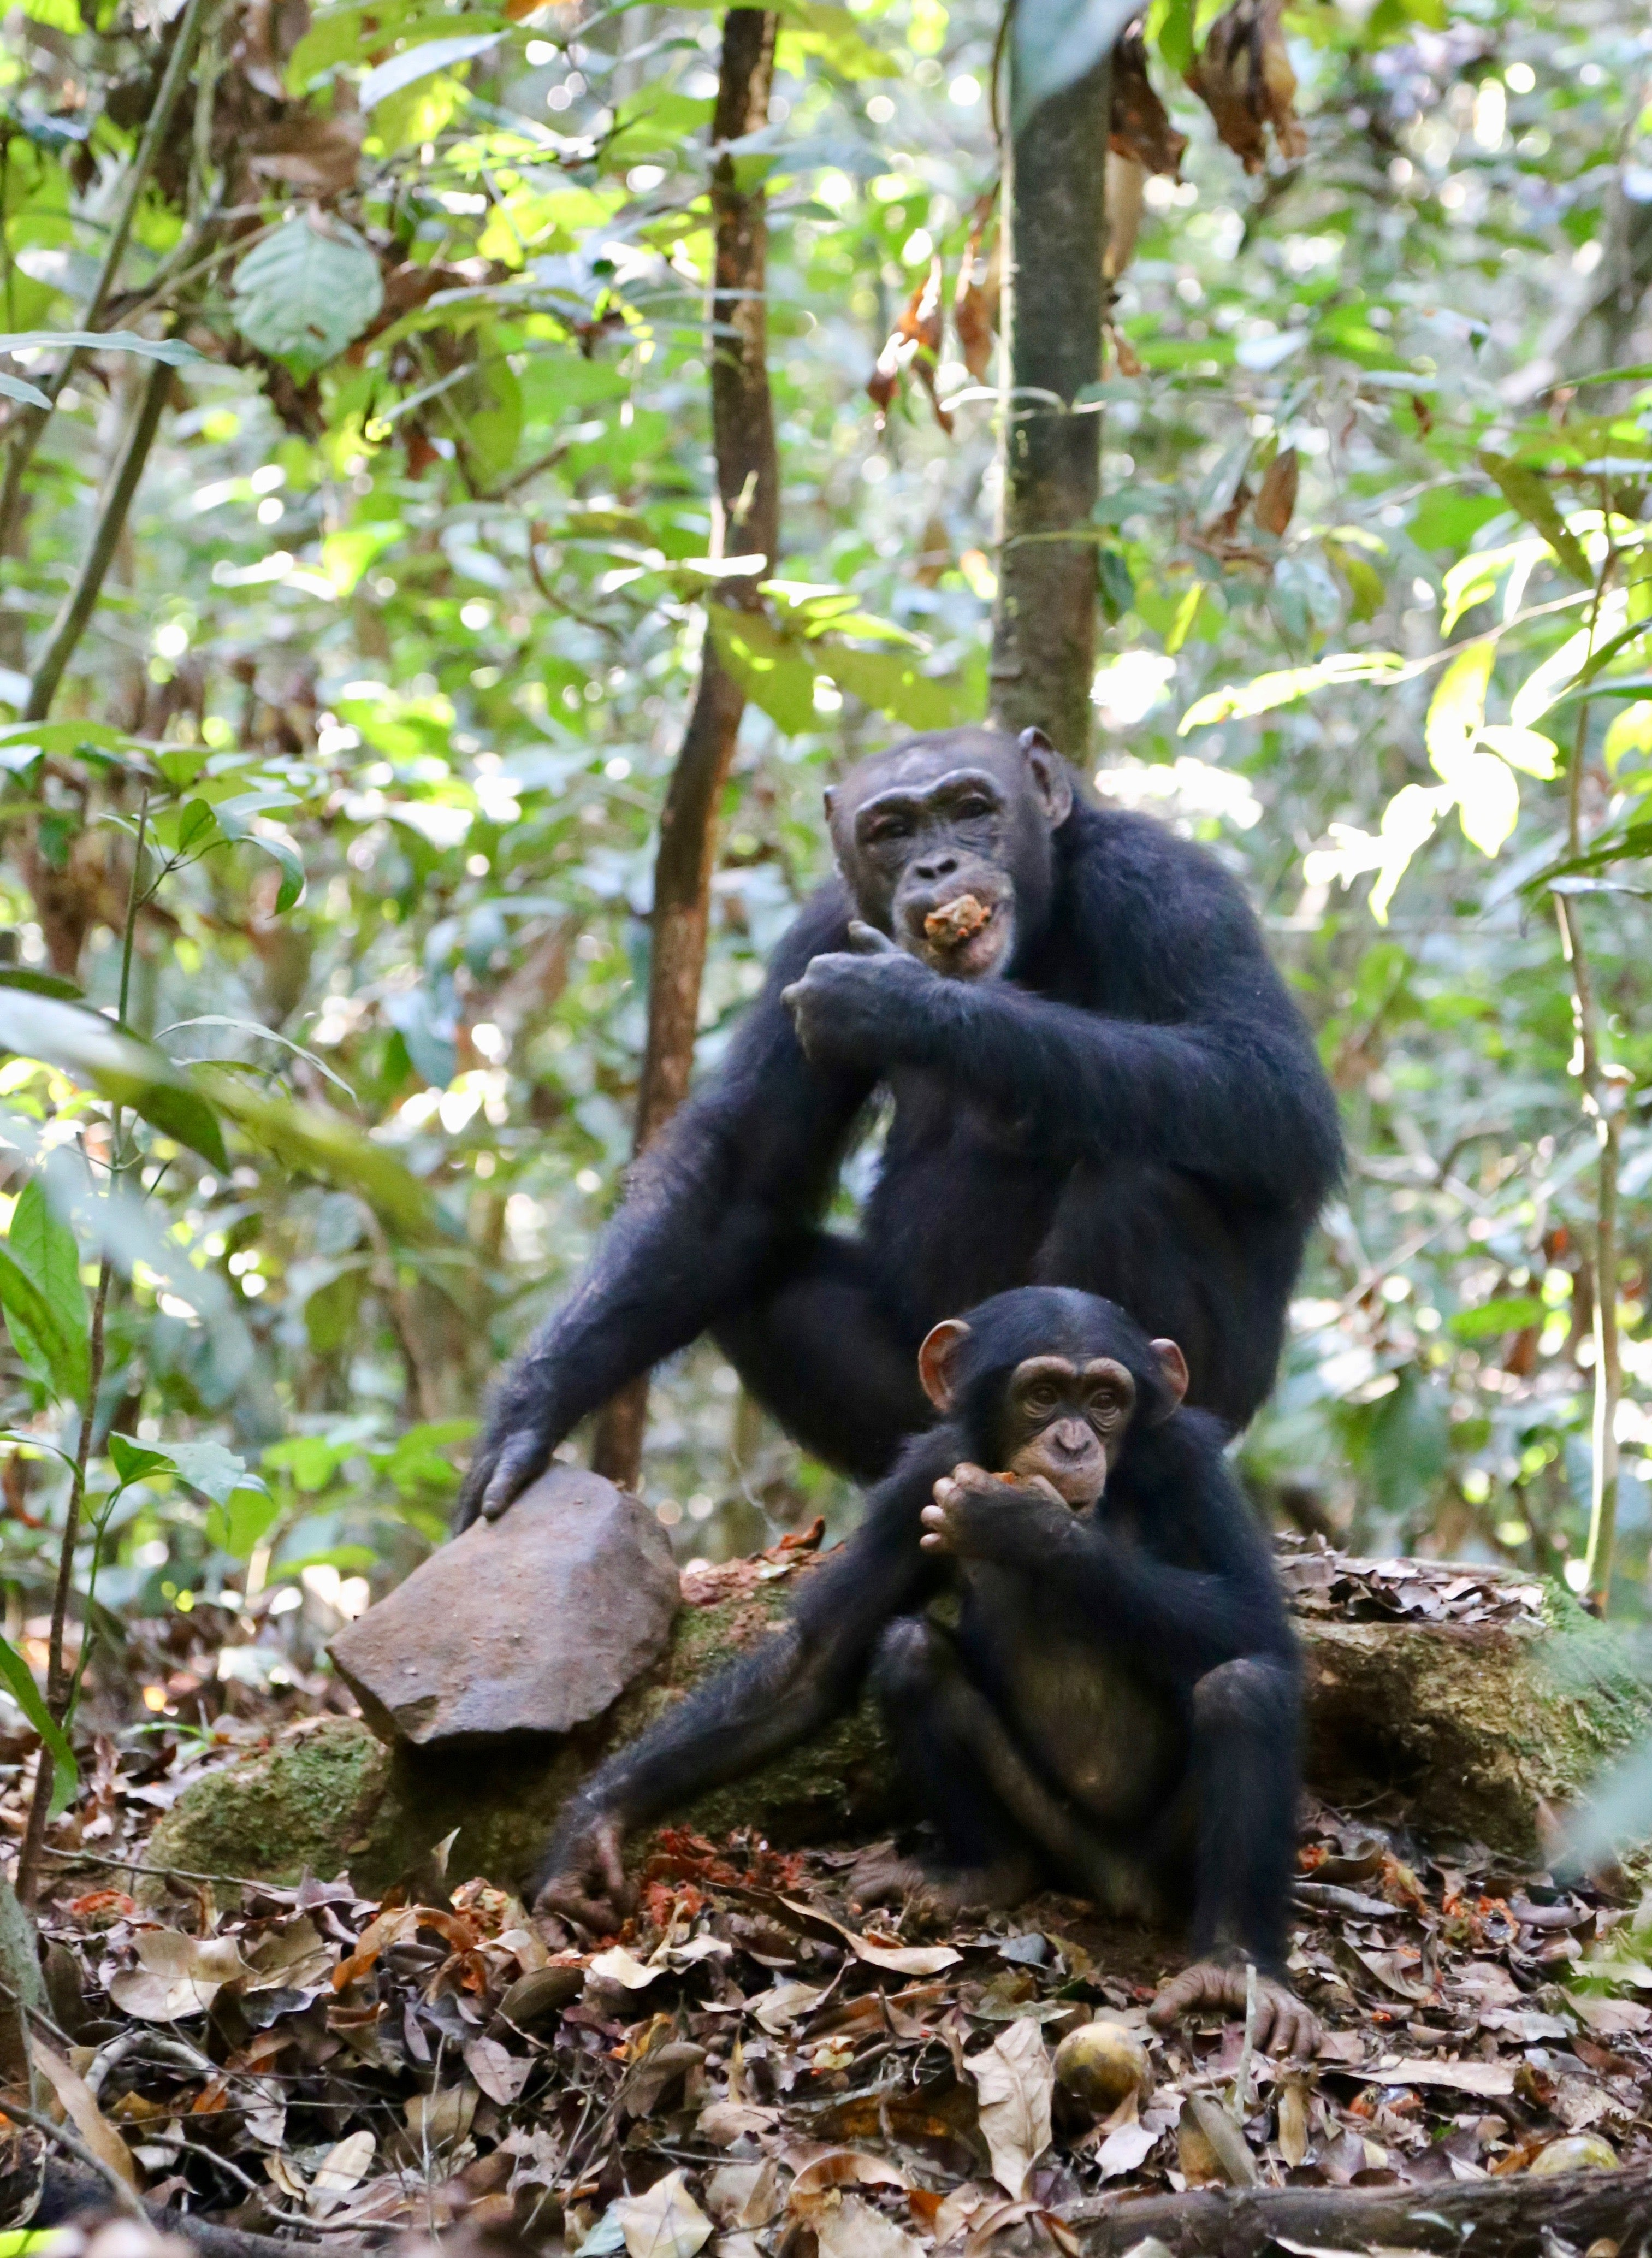 Chimpanzee Traditions Are Being Lost Along With Their Habitats